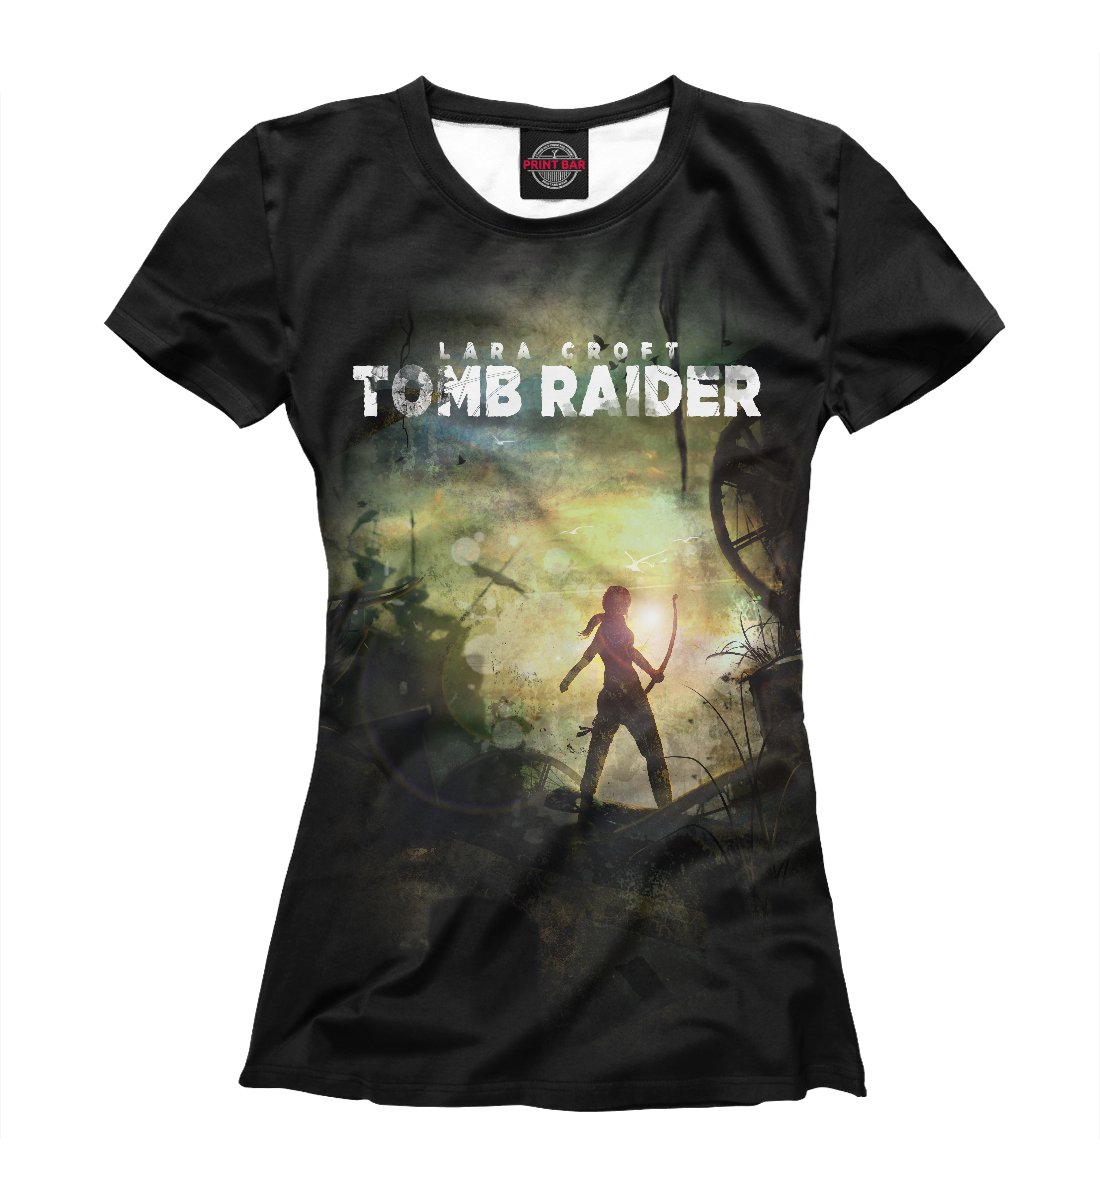 Купить Tomb Raider 2018, Printbar, Футболки, TBR-575561-fut-1